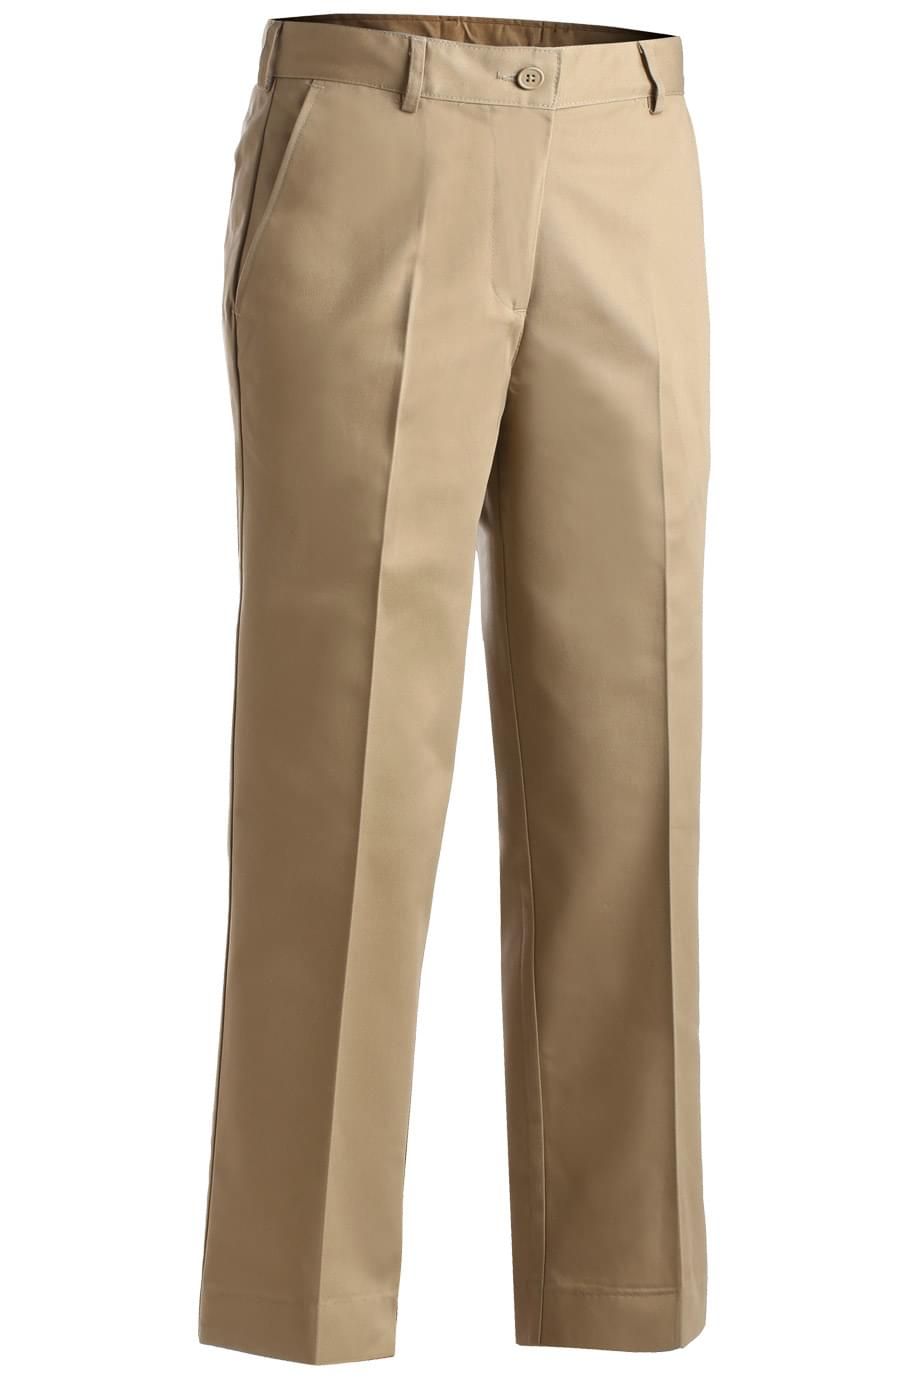 LADIES' BLENDED CHINO FLAT FRONT PANT